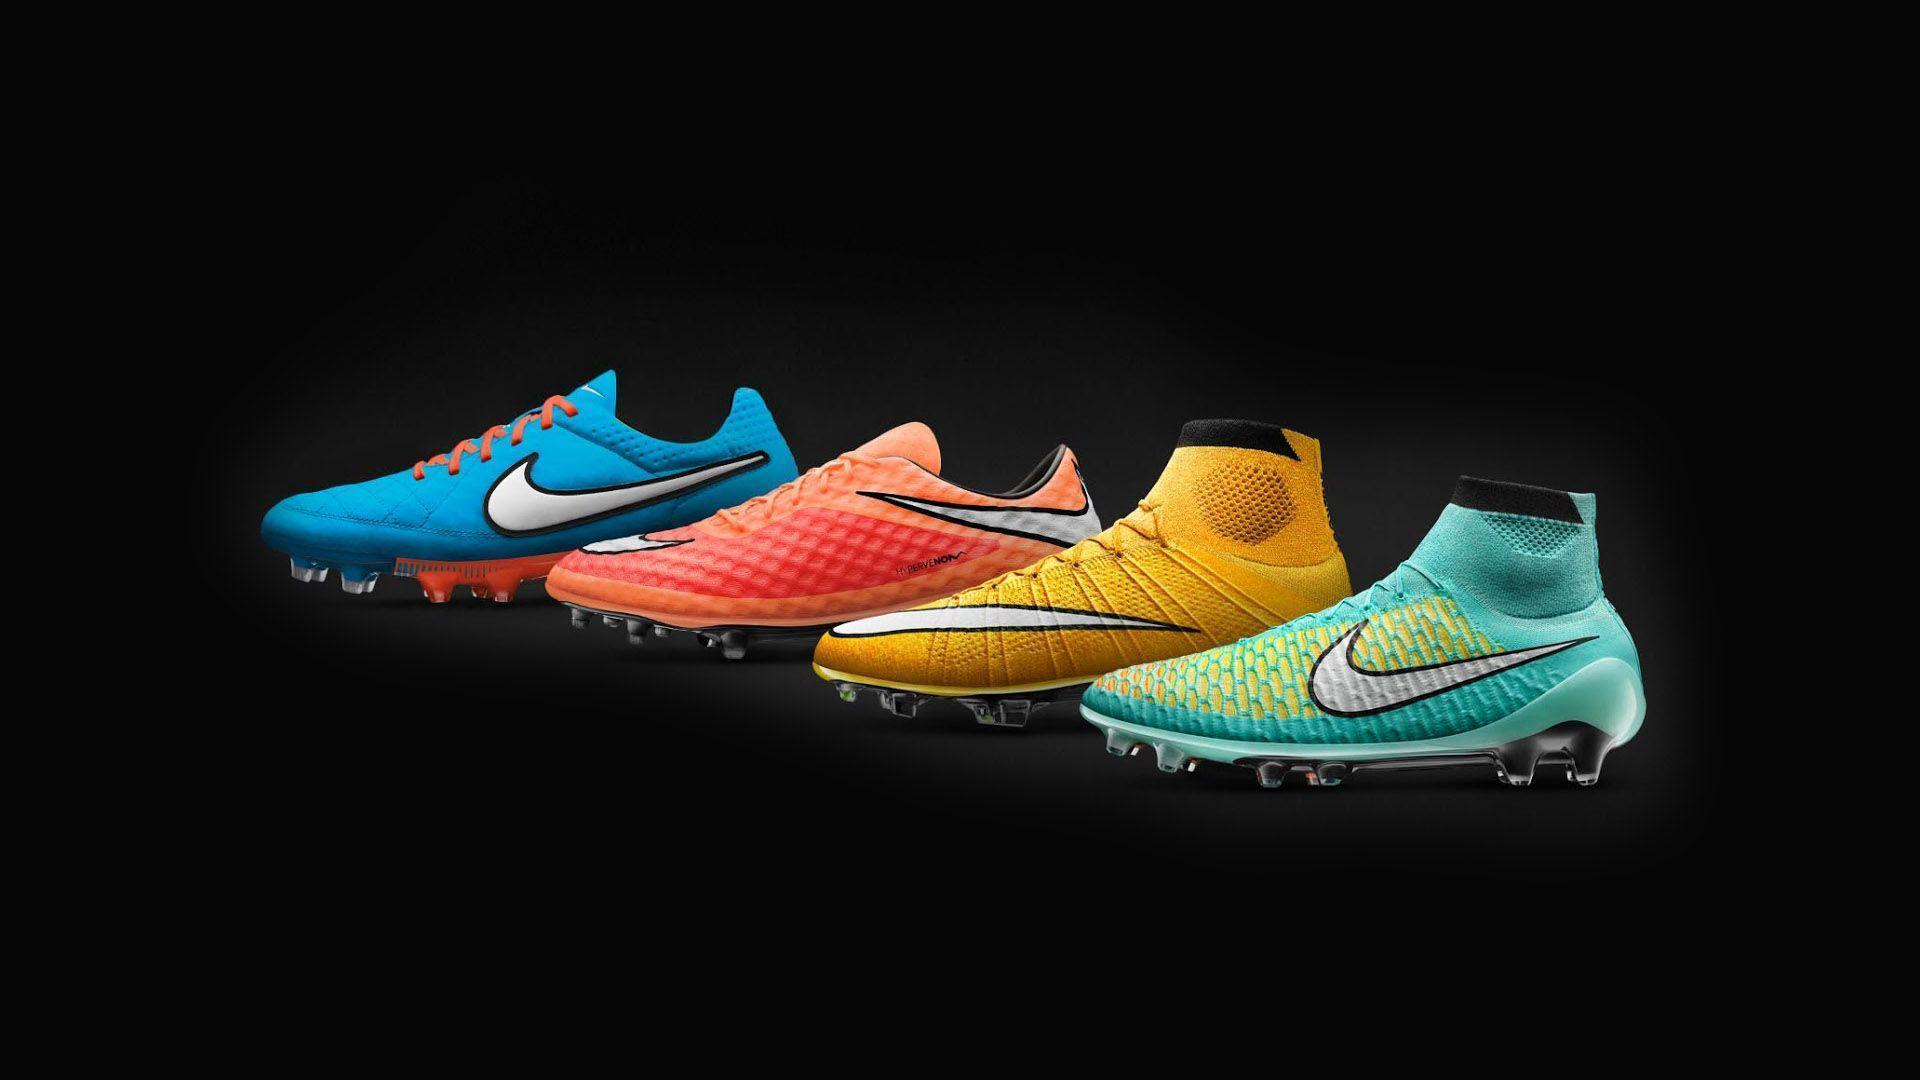 Nike Football Shoes Wallpapers - Wallpaper Cave